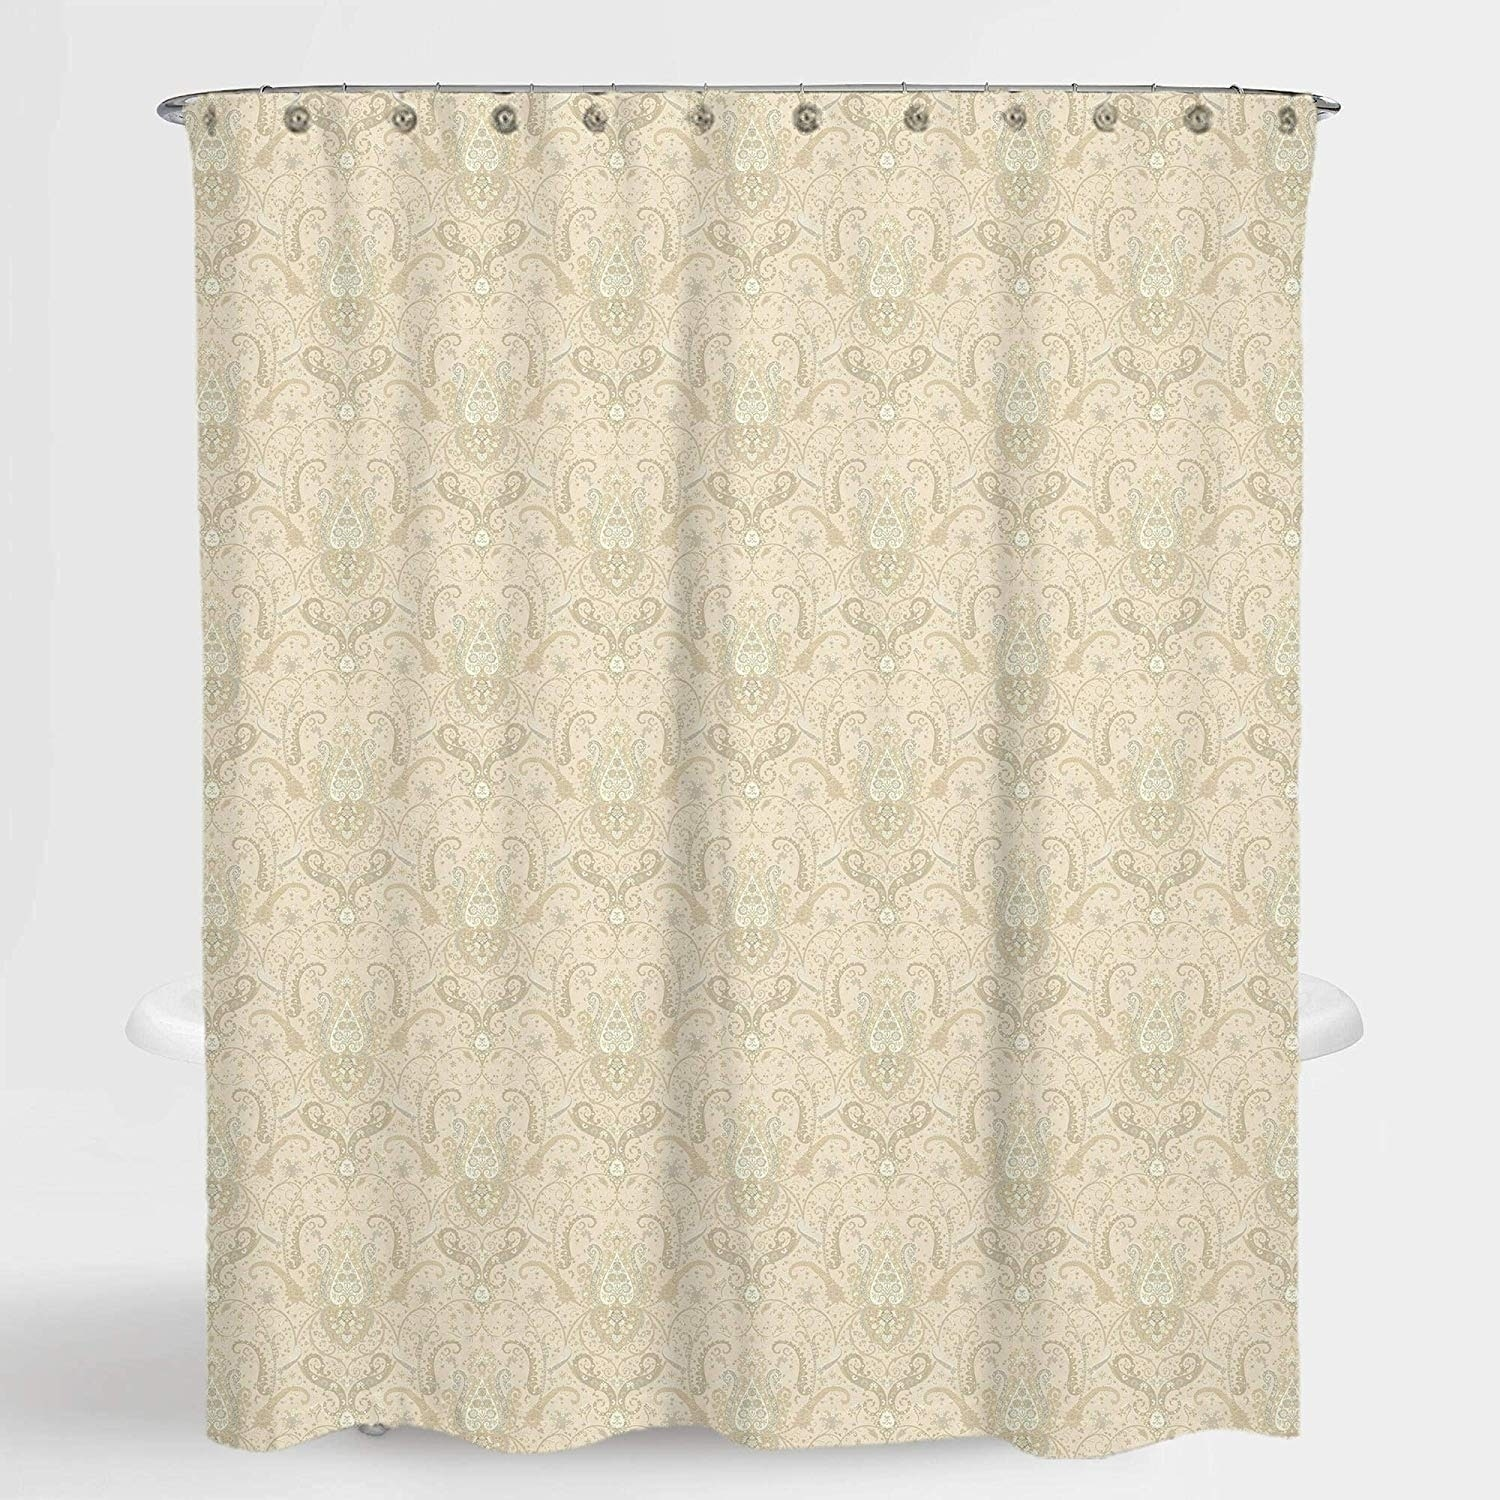 Royal Paisley Beige Lucia Water Repellent Shower Curtain 72 X72 Free 12 Piece Shower Curtain Rings